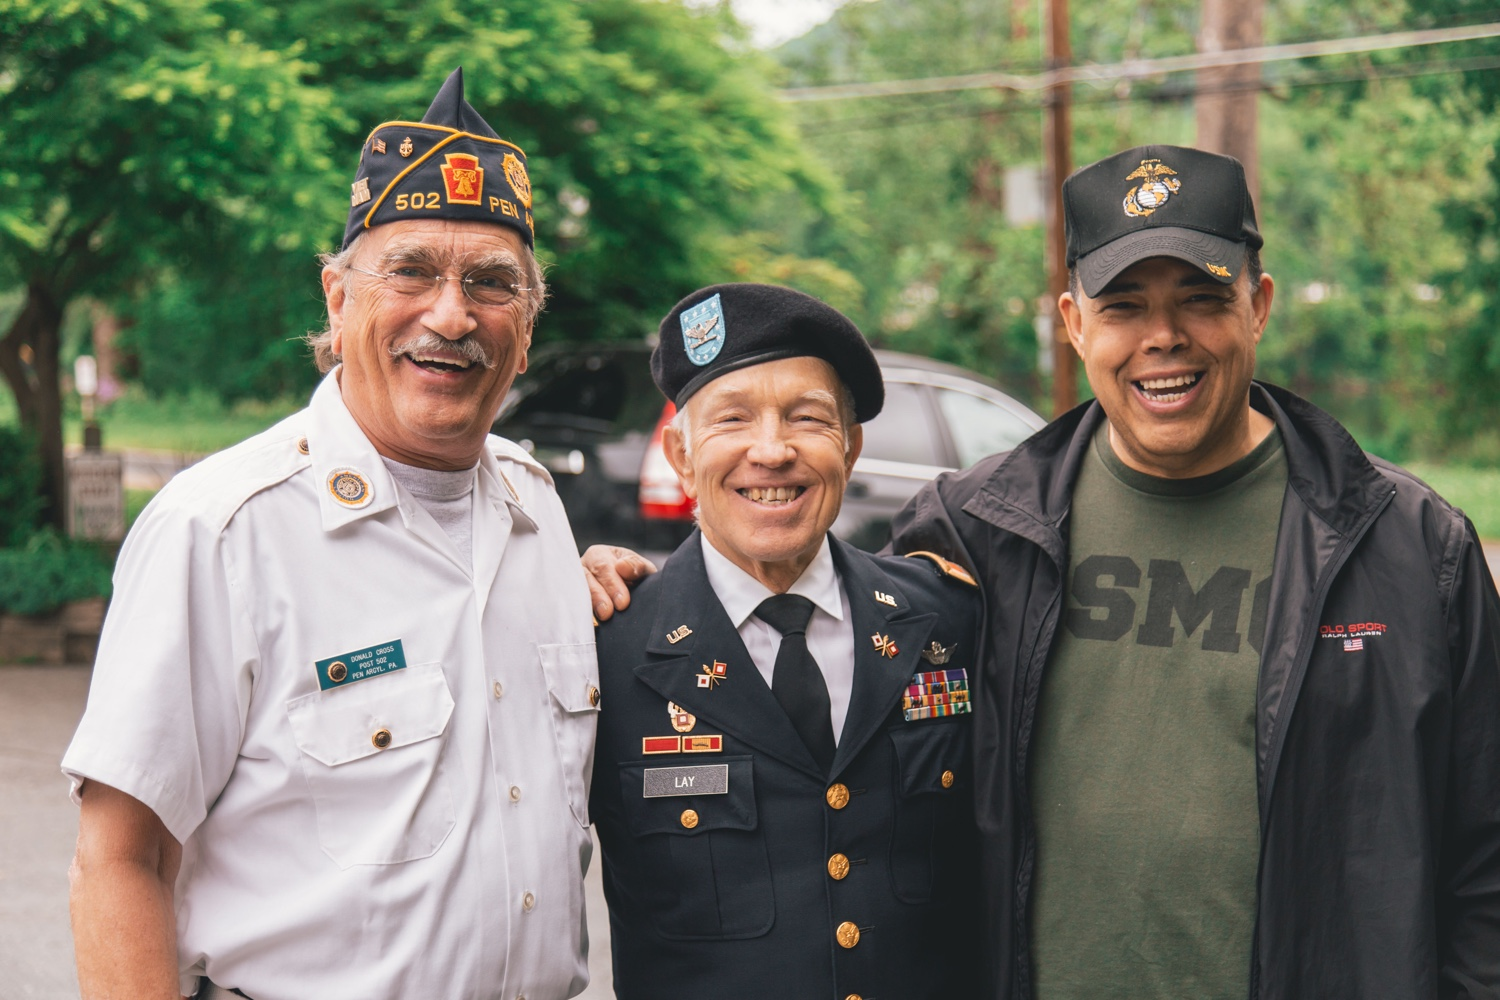 https://jfcs-cares.org/wp-content/uploads/2019/10/Veterans-Header-Photo-1.jpg